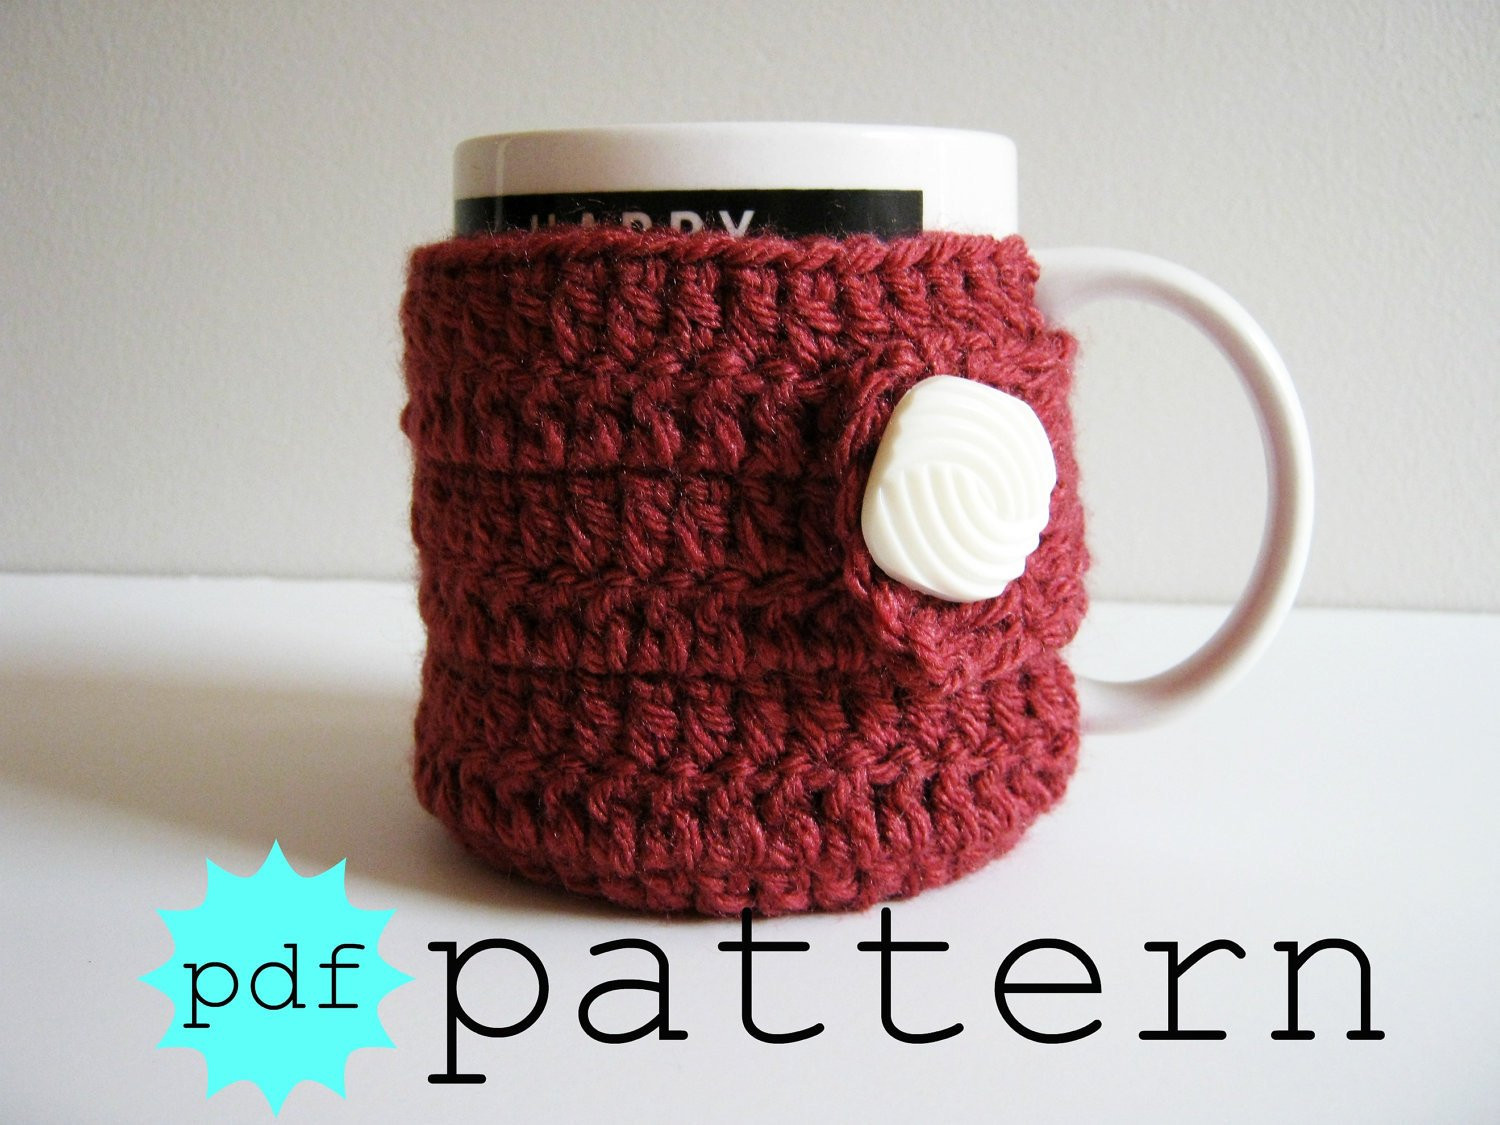 Crochet Coffee Cup Cozy Luxury Pdf Crochet Pattern Coffee Mug Cozy with button by Of Crochet Coffee Cup Cozy Awesome Crochet and Other Stuff Crochet A Mug Cozy Free Pattern